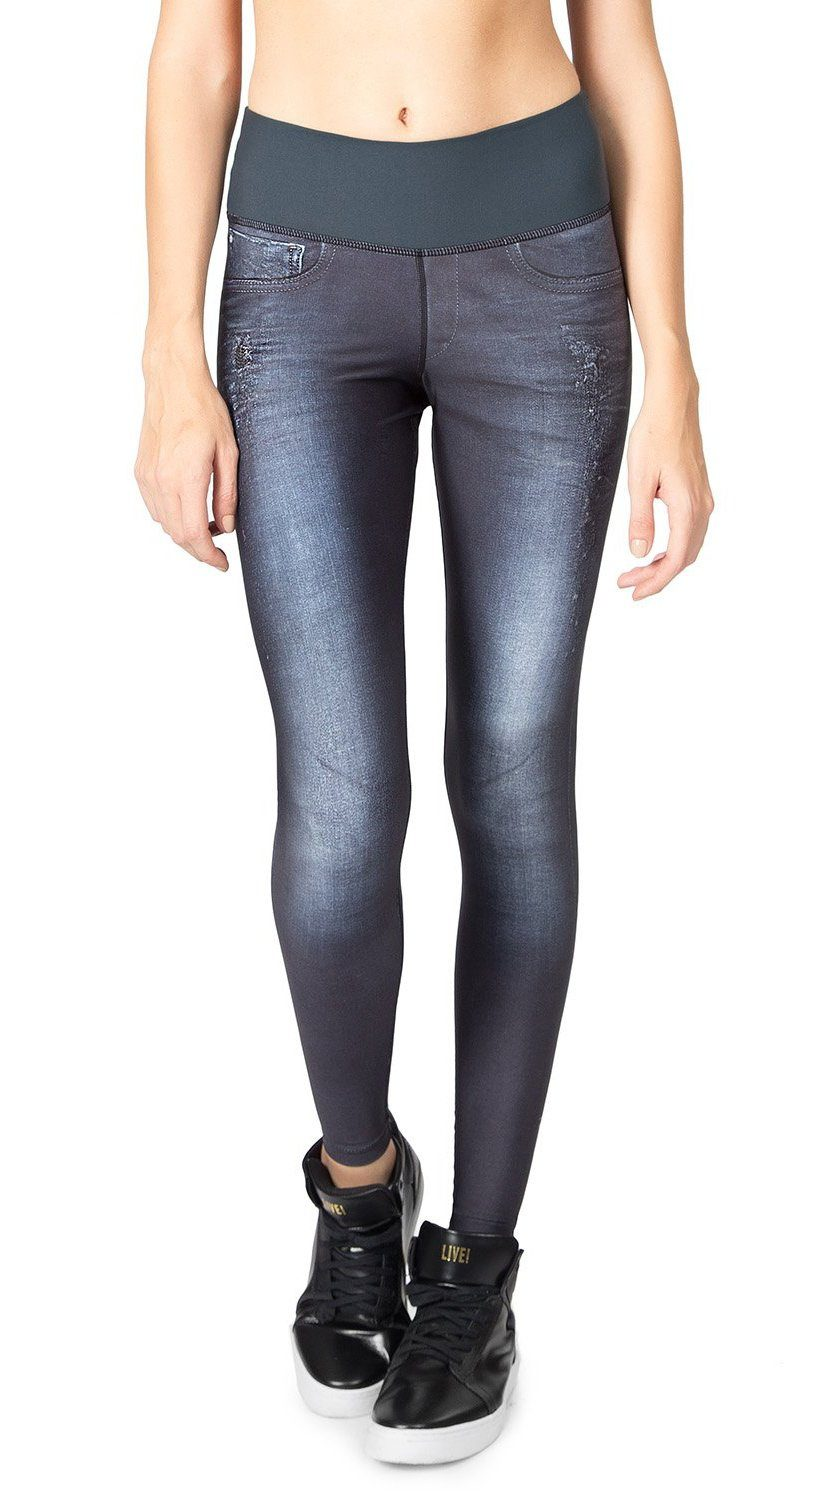 Fake Jeans Legging - Active Mood Reversible Tight